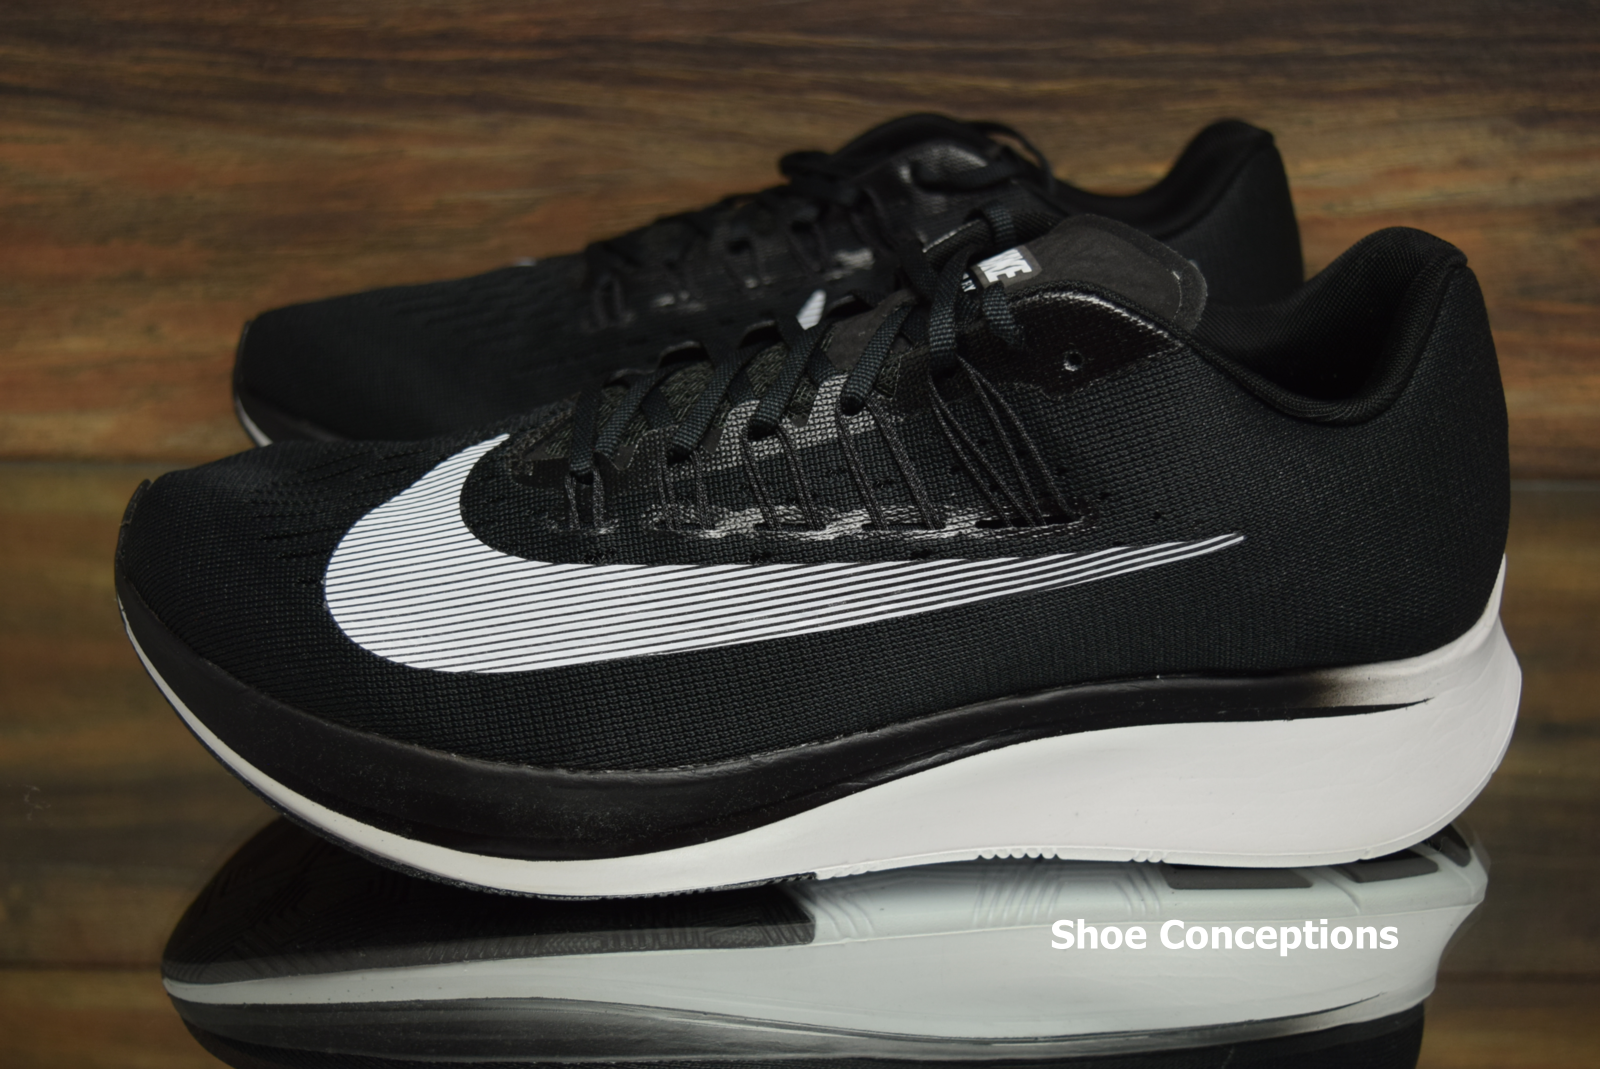 8fed286fc73d ... Nike Zoom Fly Fly Fly Black White 880848-001 Running shoes Men s -  Multi Size ...